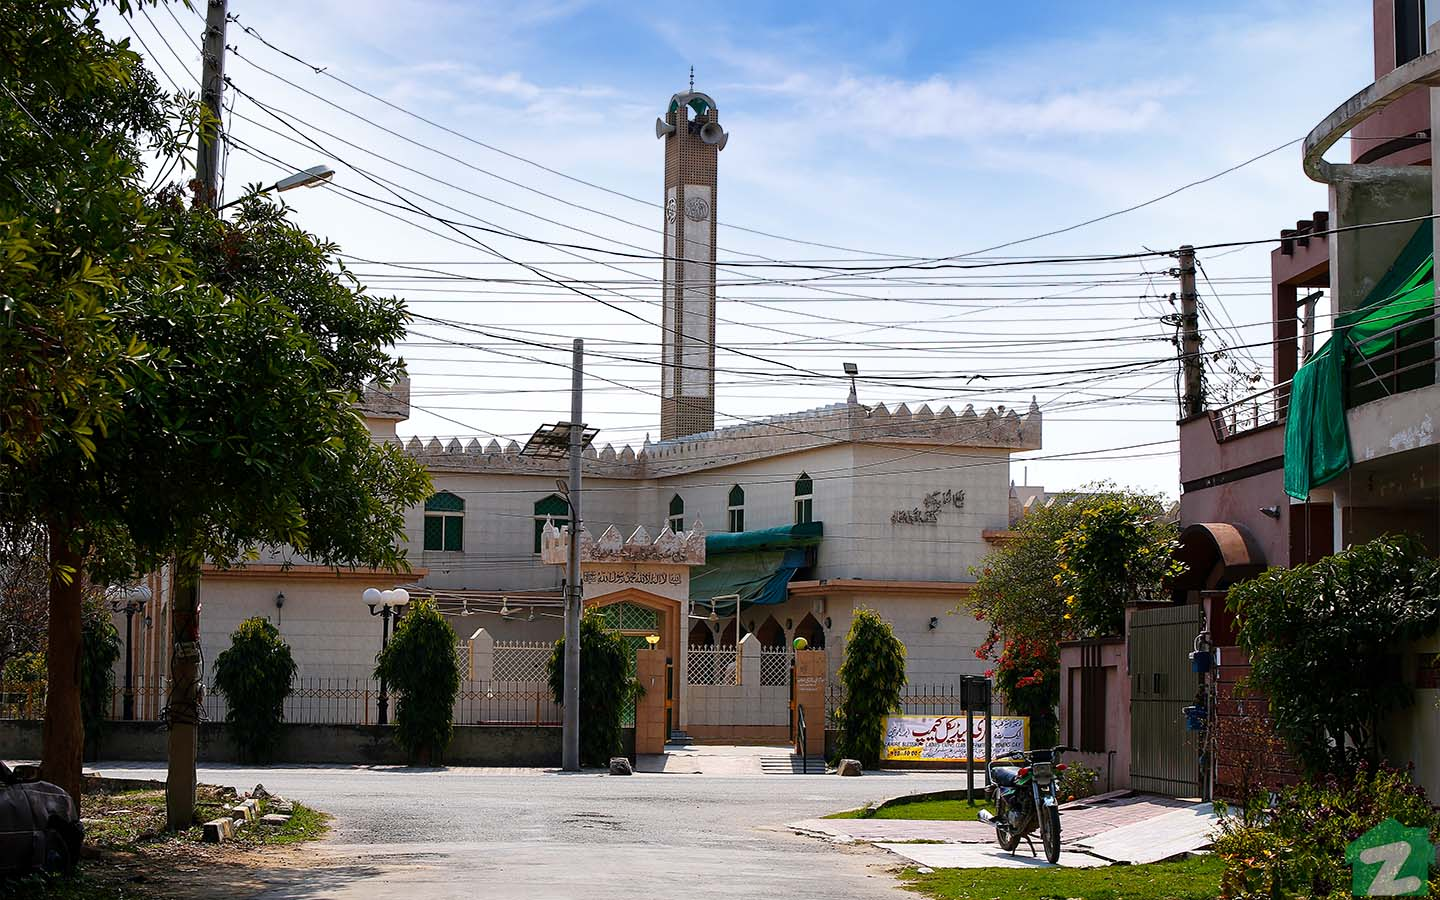 mosque in State life housing society